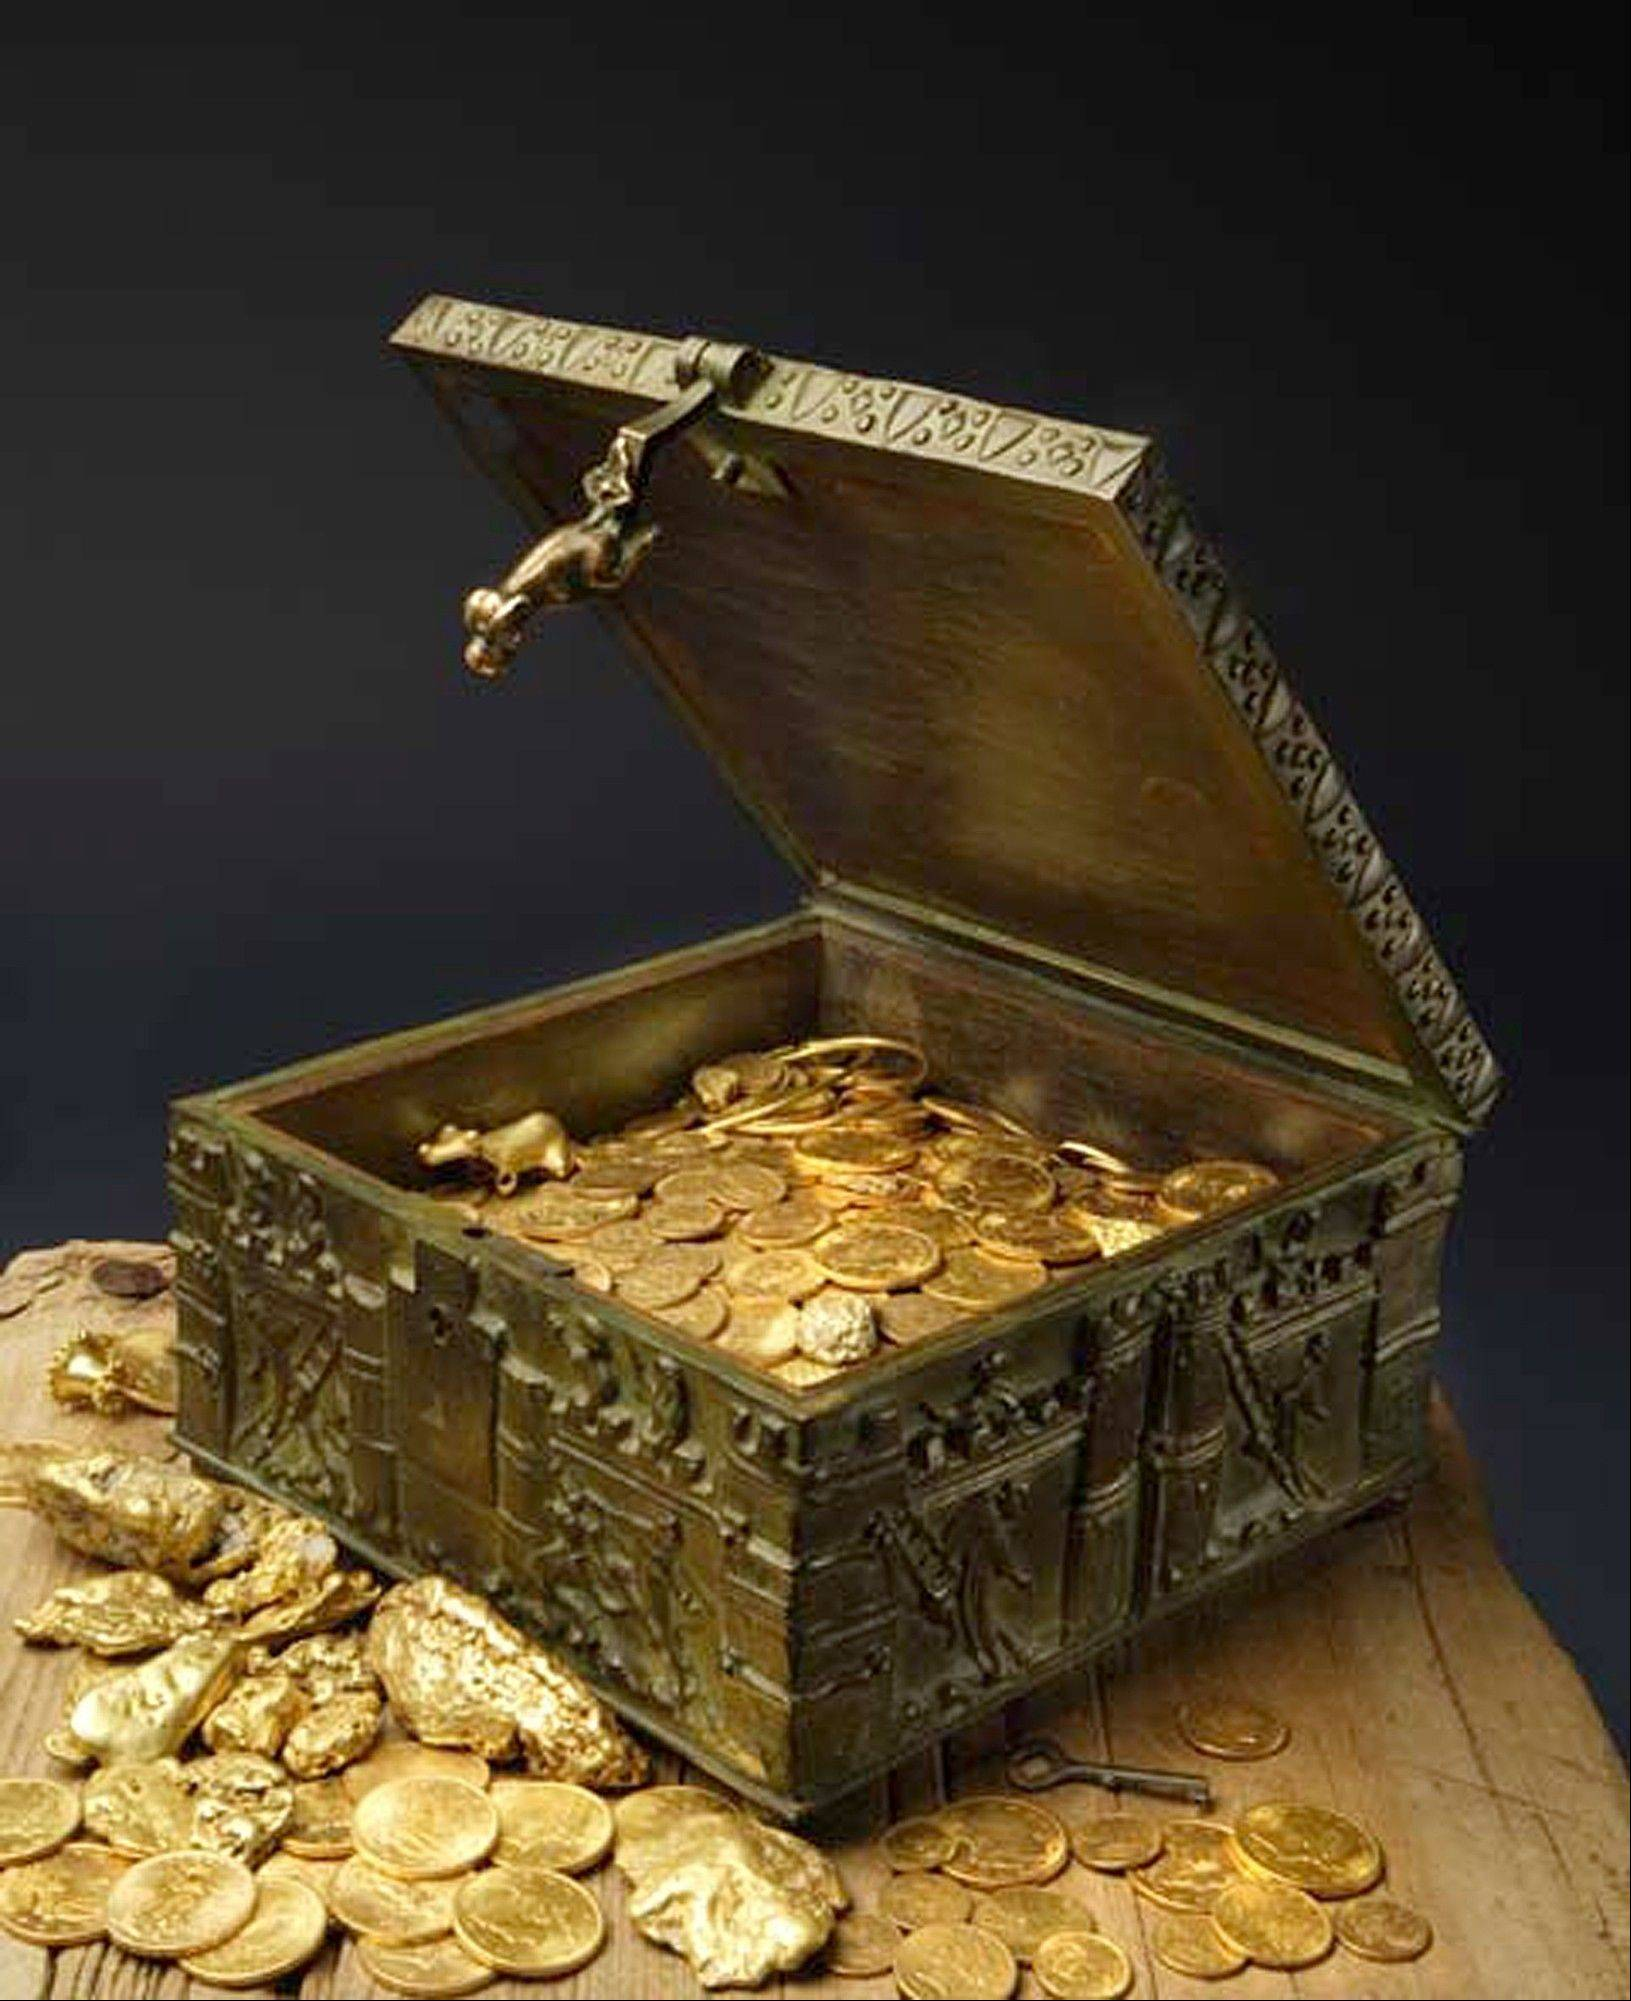 This undated photo provided by Forrest Fenn shows a chest purported to contain gold dust, hundreds of rare gold coins, gold nuggets and other artifacts.